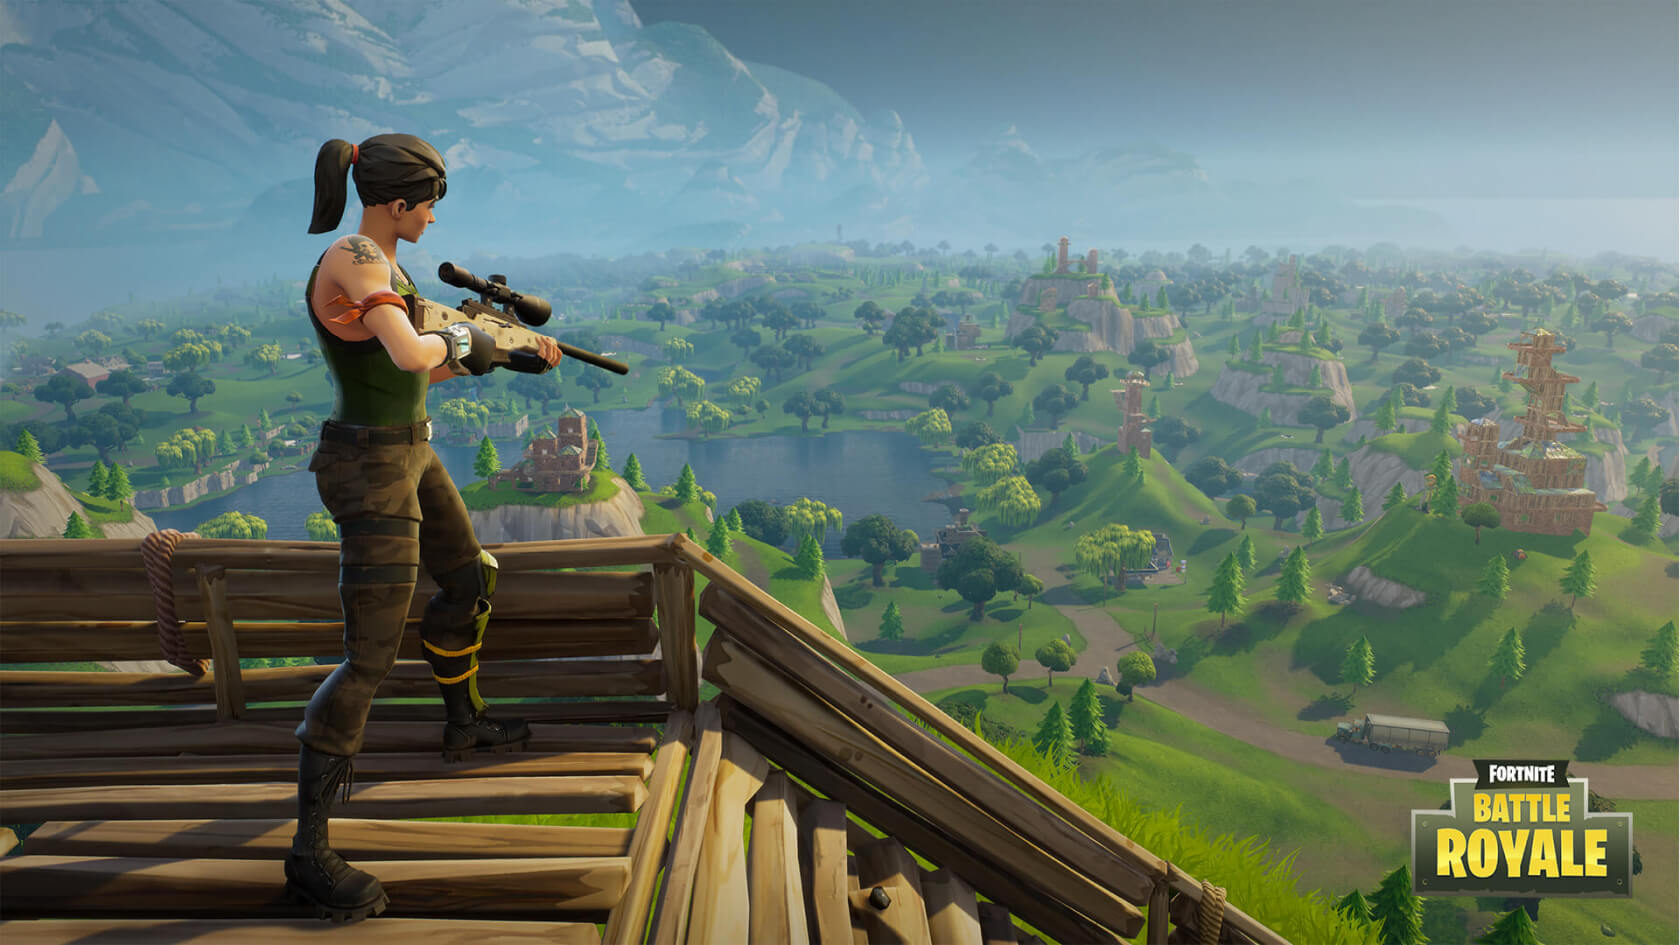 Epic Games sues minor for cheating in Fortnite, gets lambasted by mother